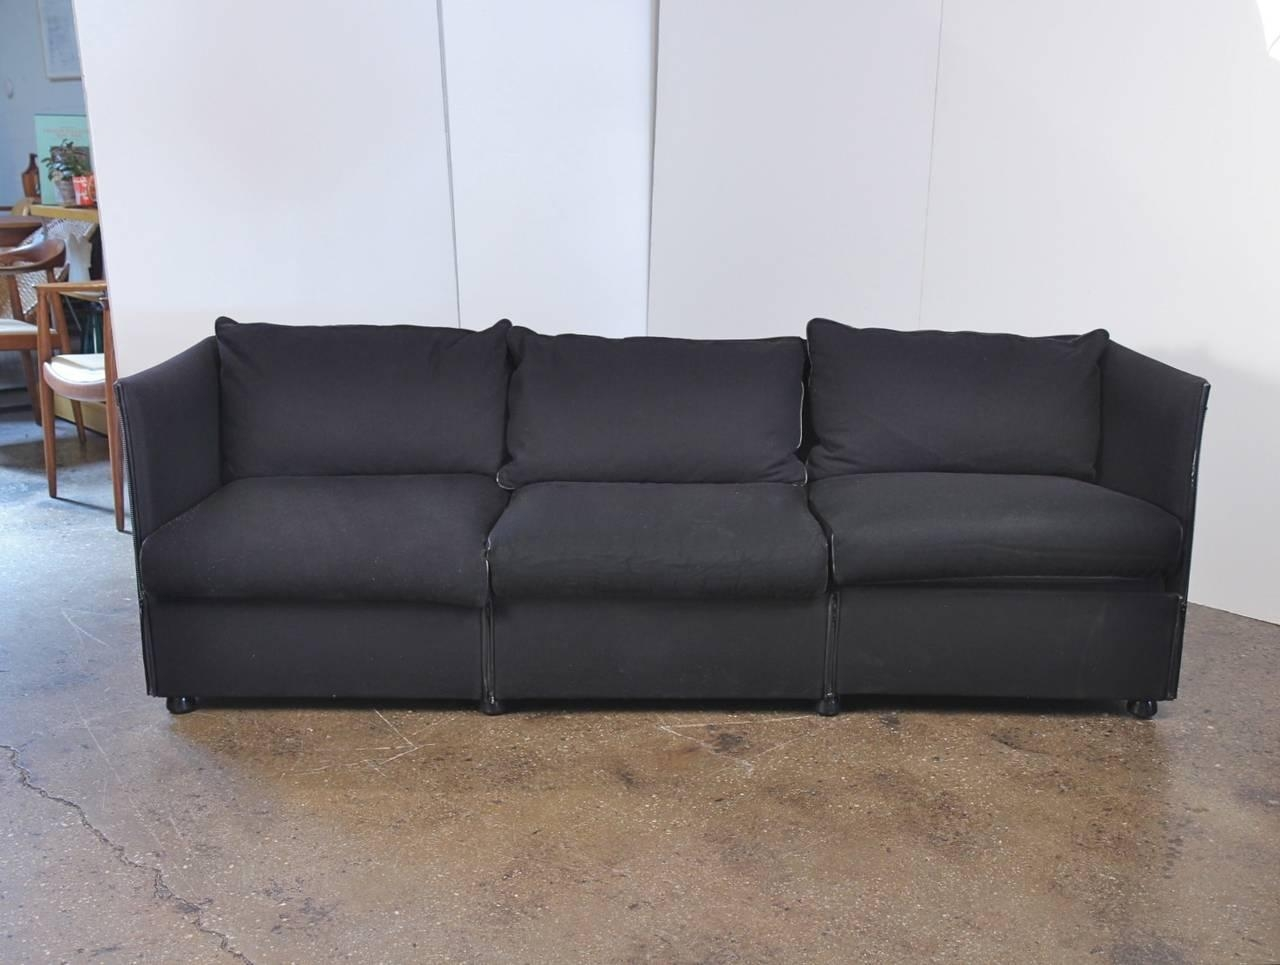 Mario Bellini Sofa For Cassina At 1Stdibs Intended For Bellini Sofas (View 12 of 20)